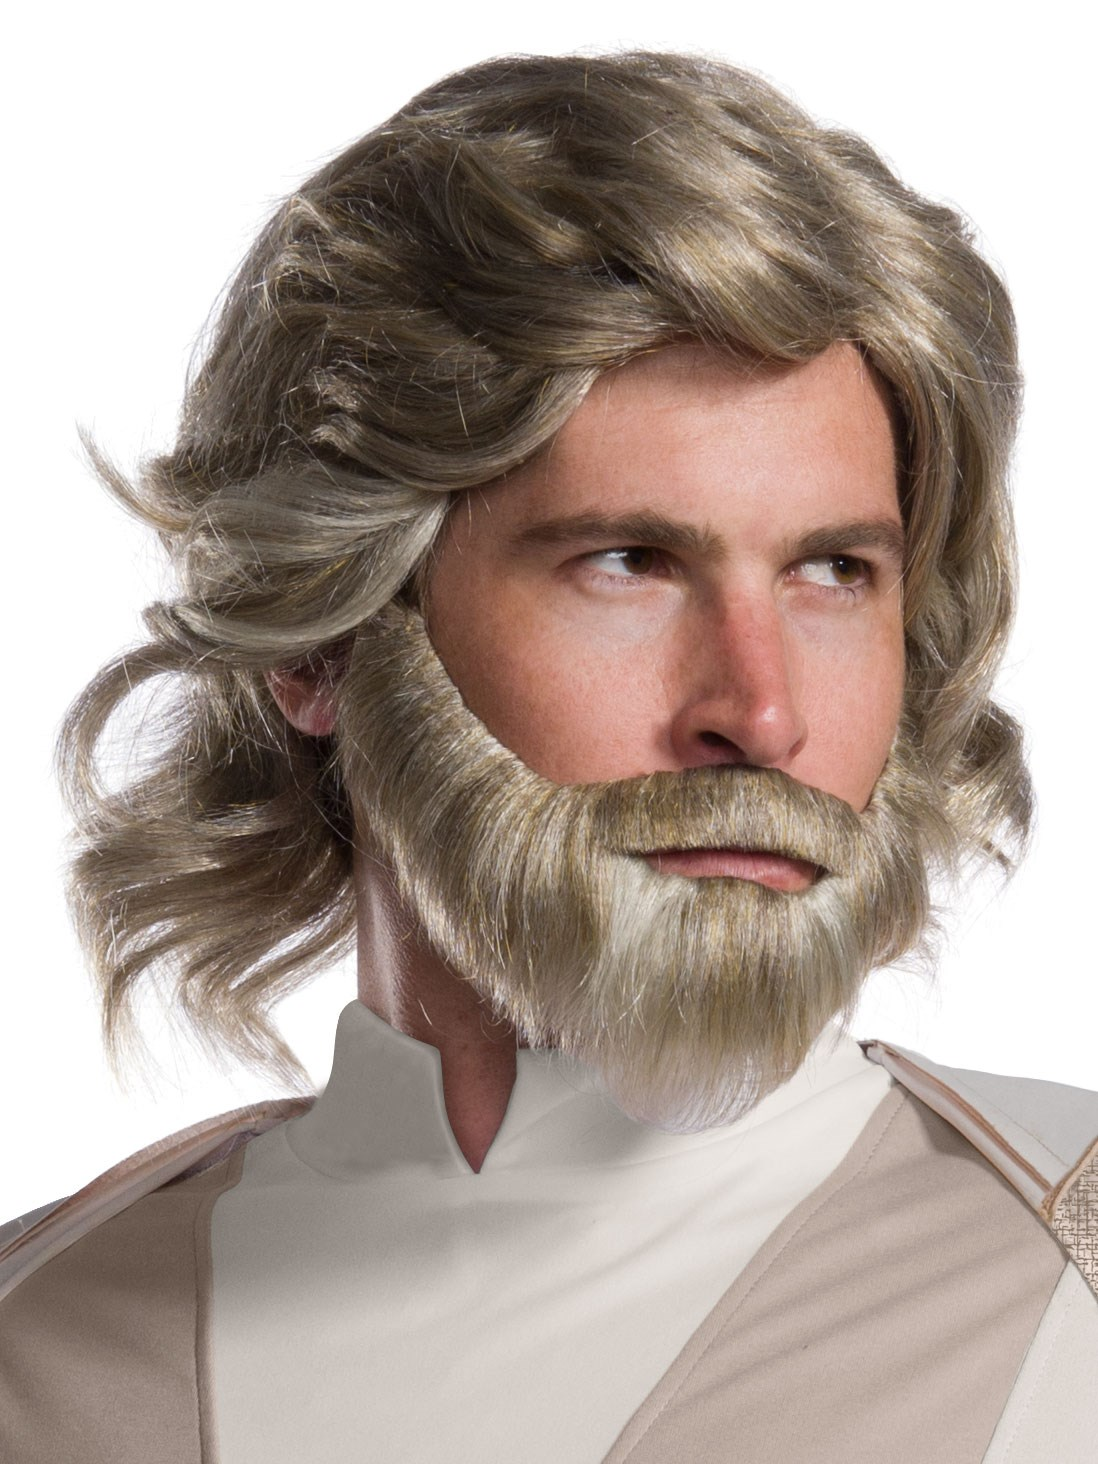 Wigs For Halloween Costumes | BuyCostumes.com